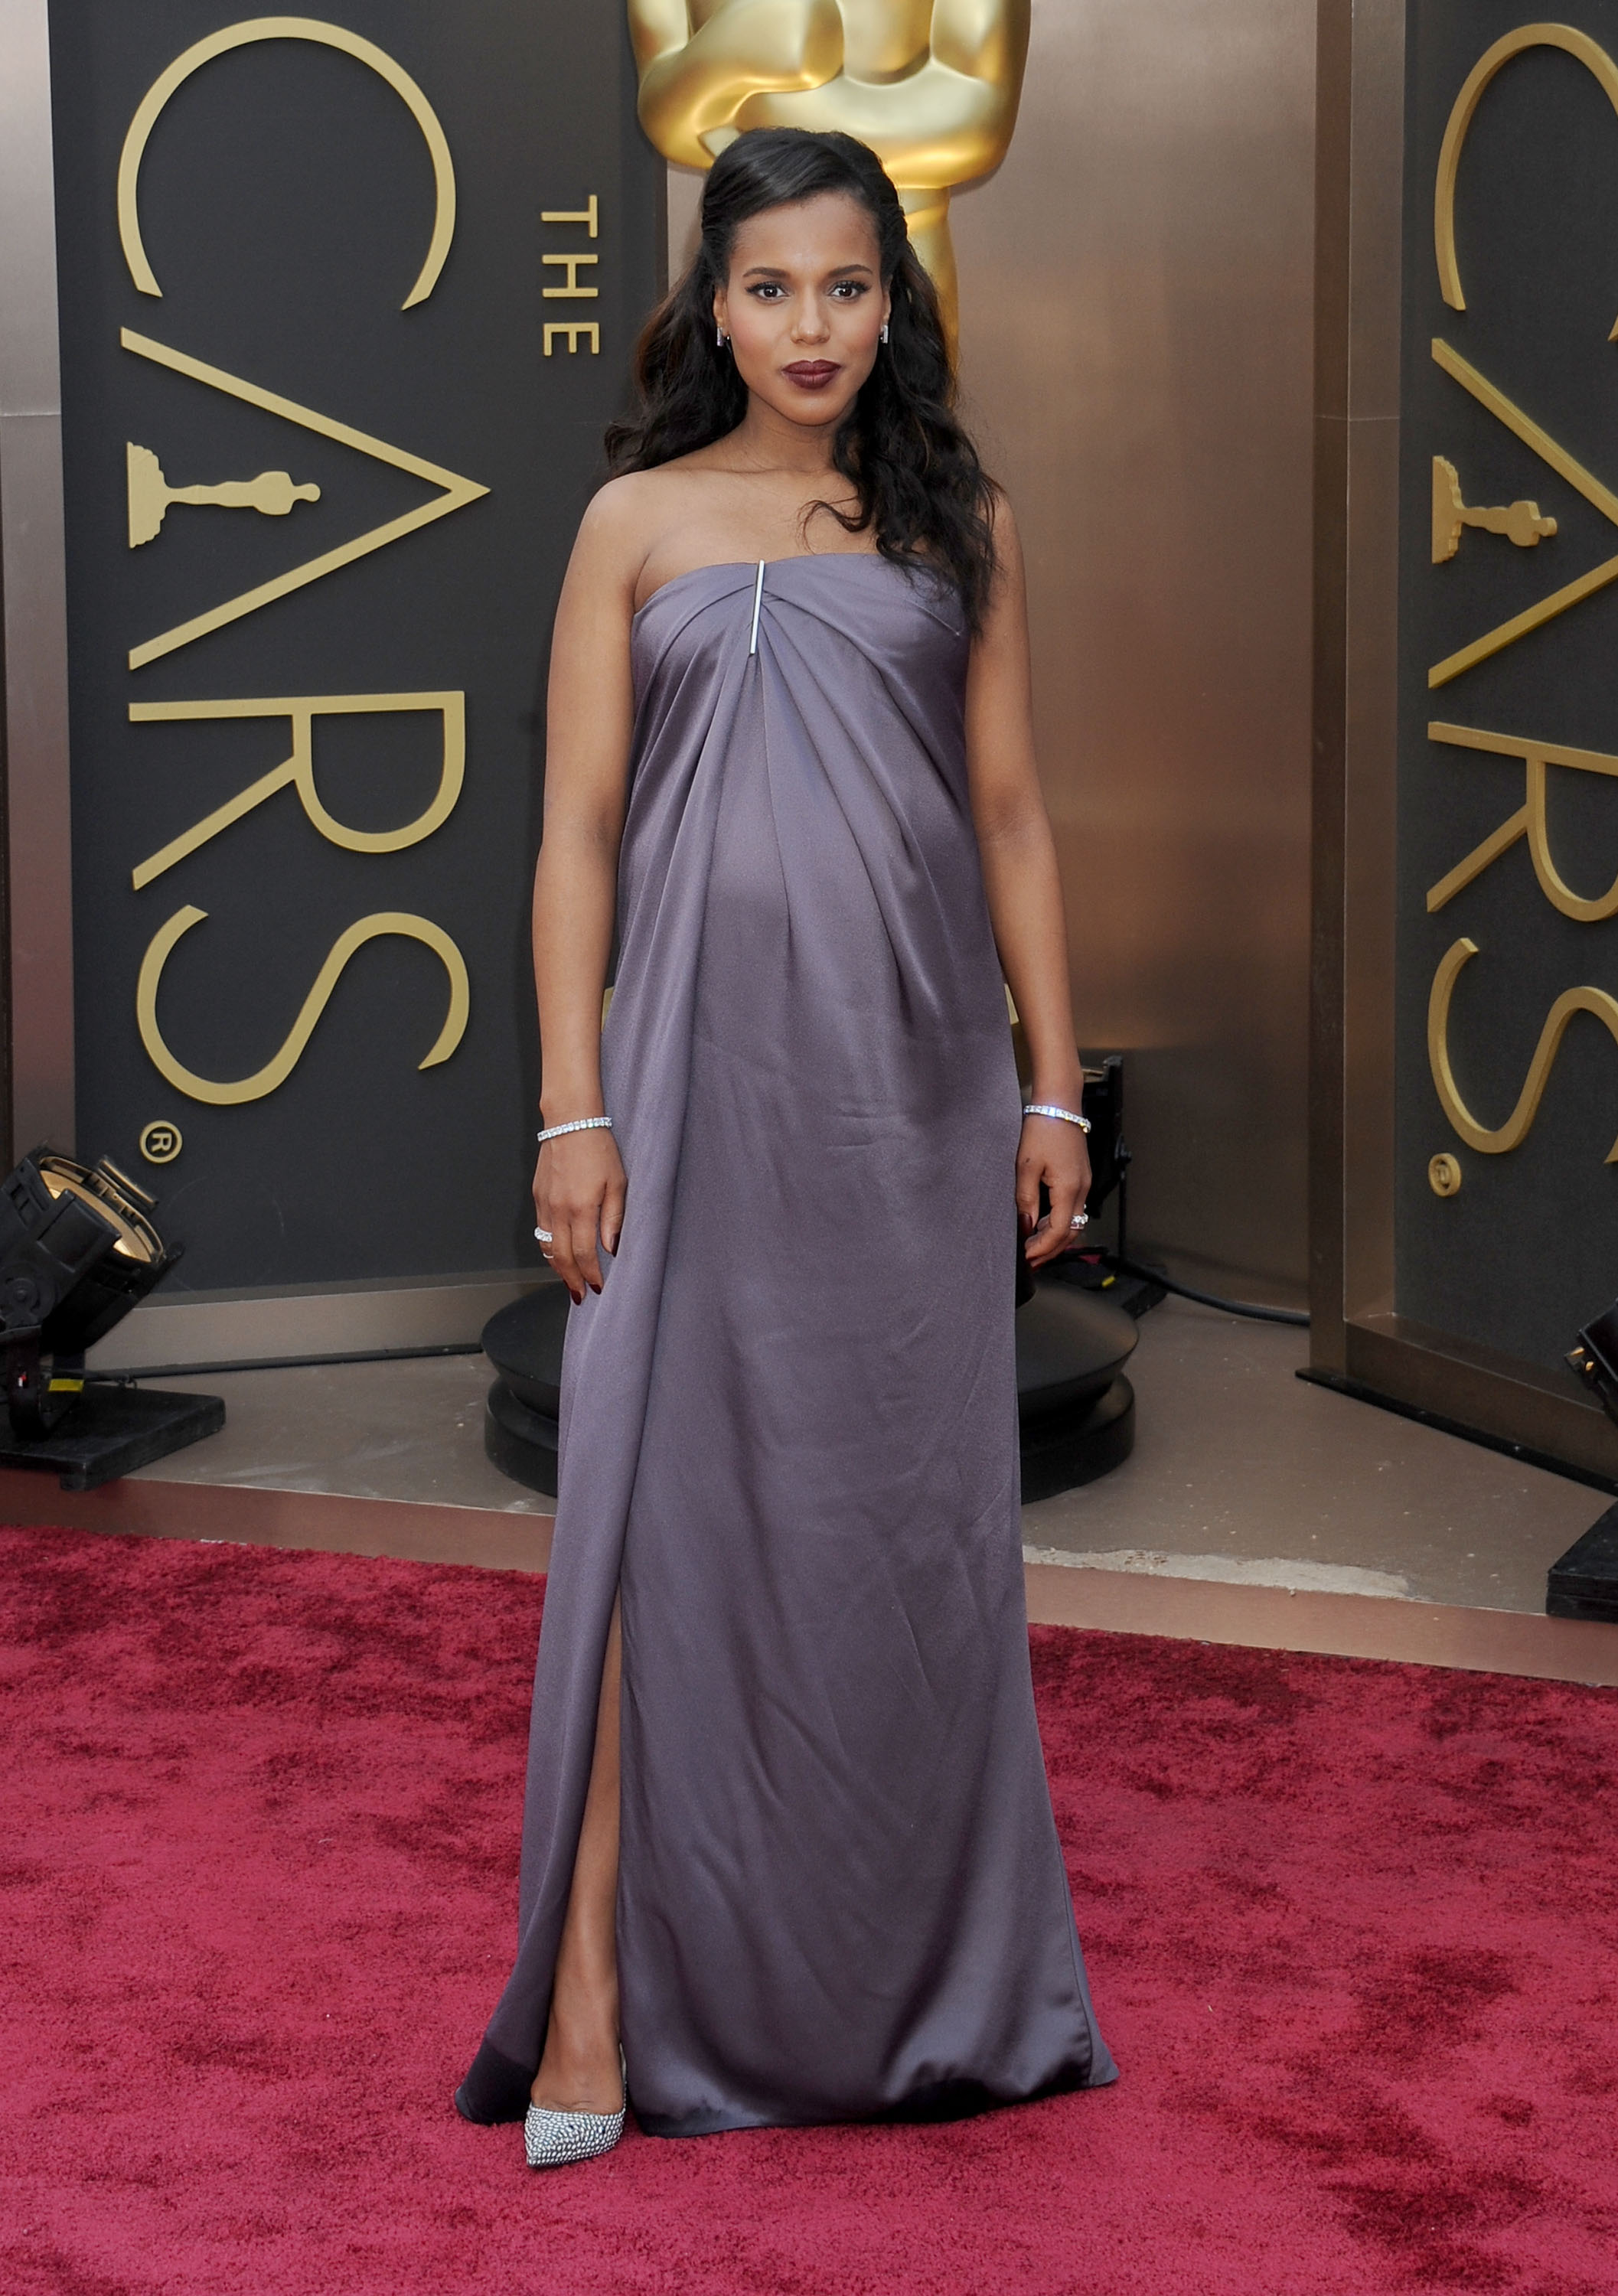 Kerry Washington arrives at the 86th Annual Academy Awards at Hollywood & Highland Center on March 2, 2014 in Hollywood, California.